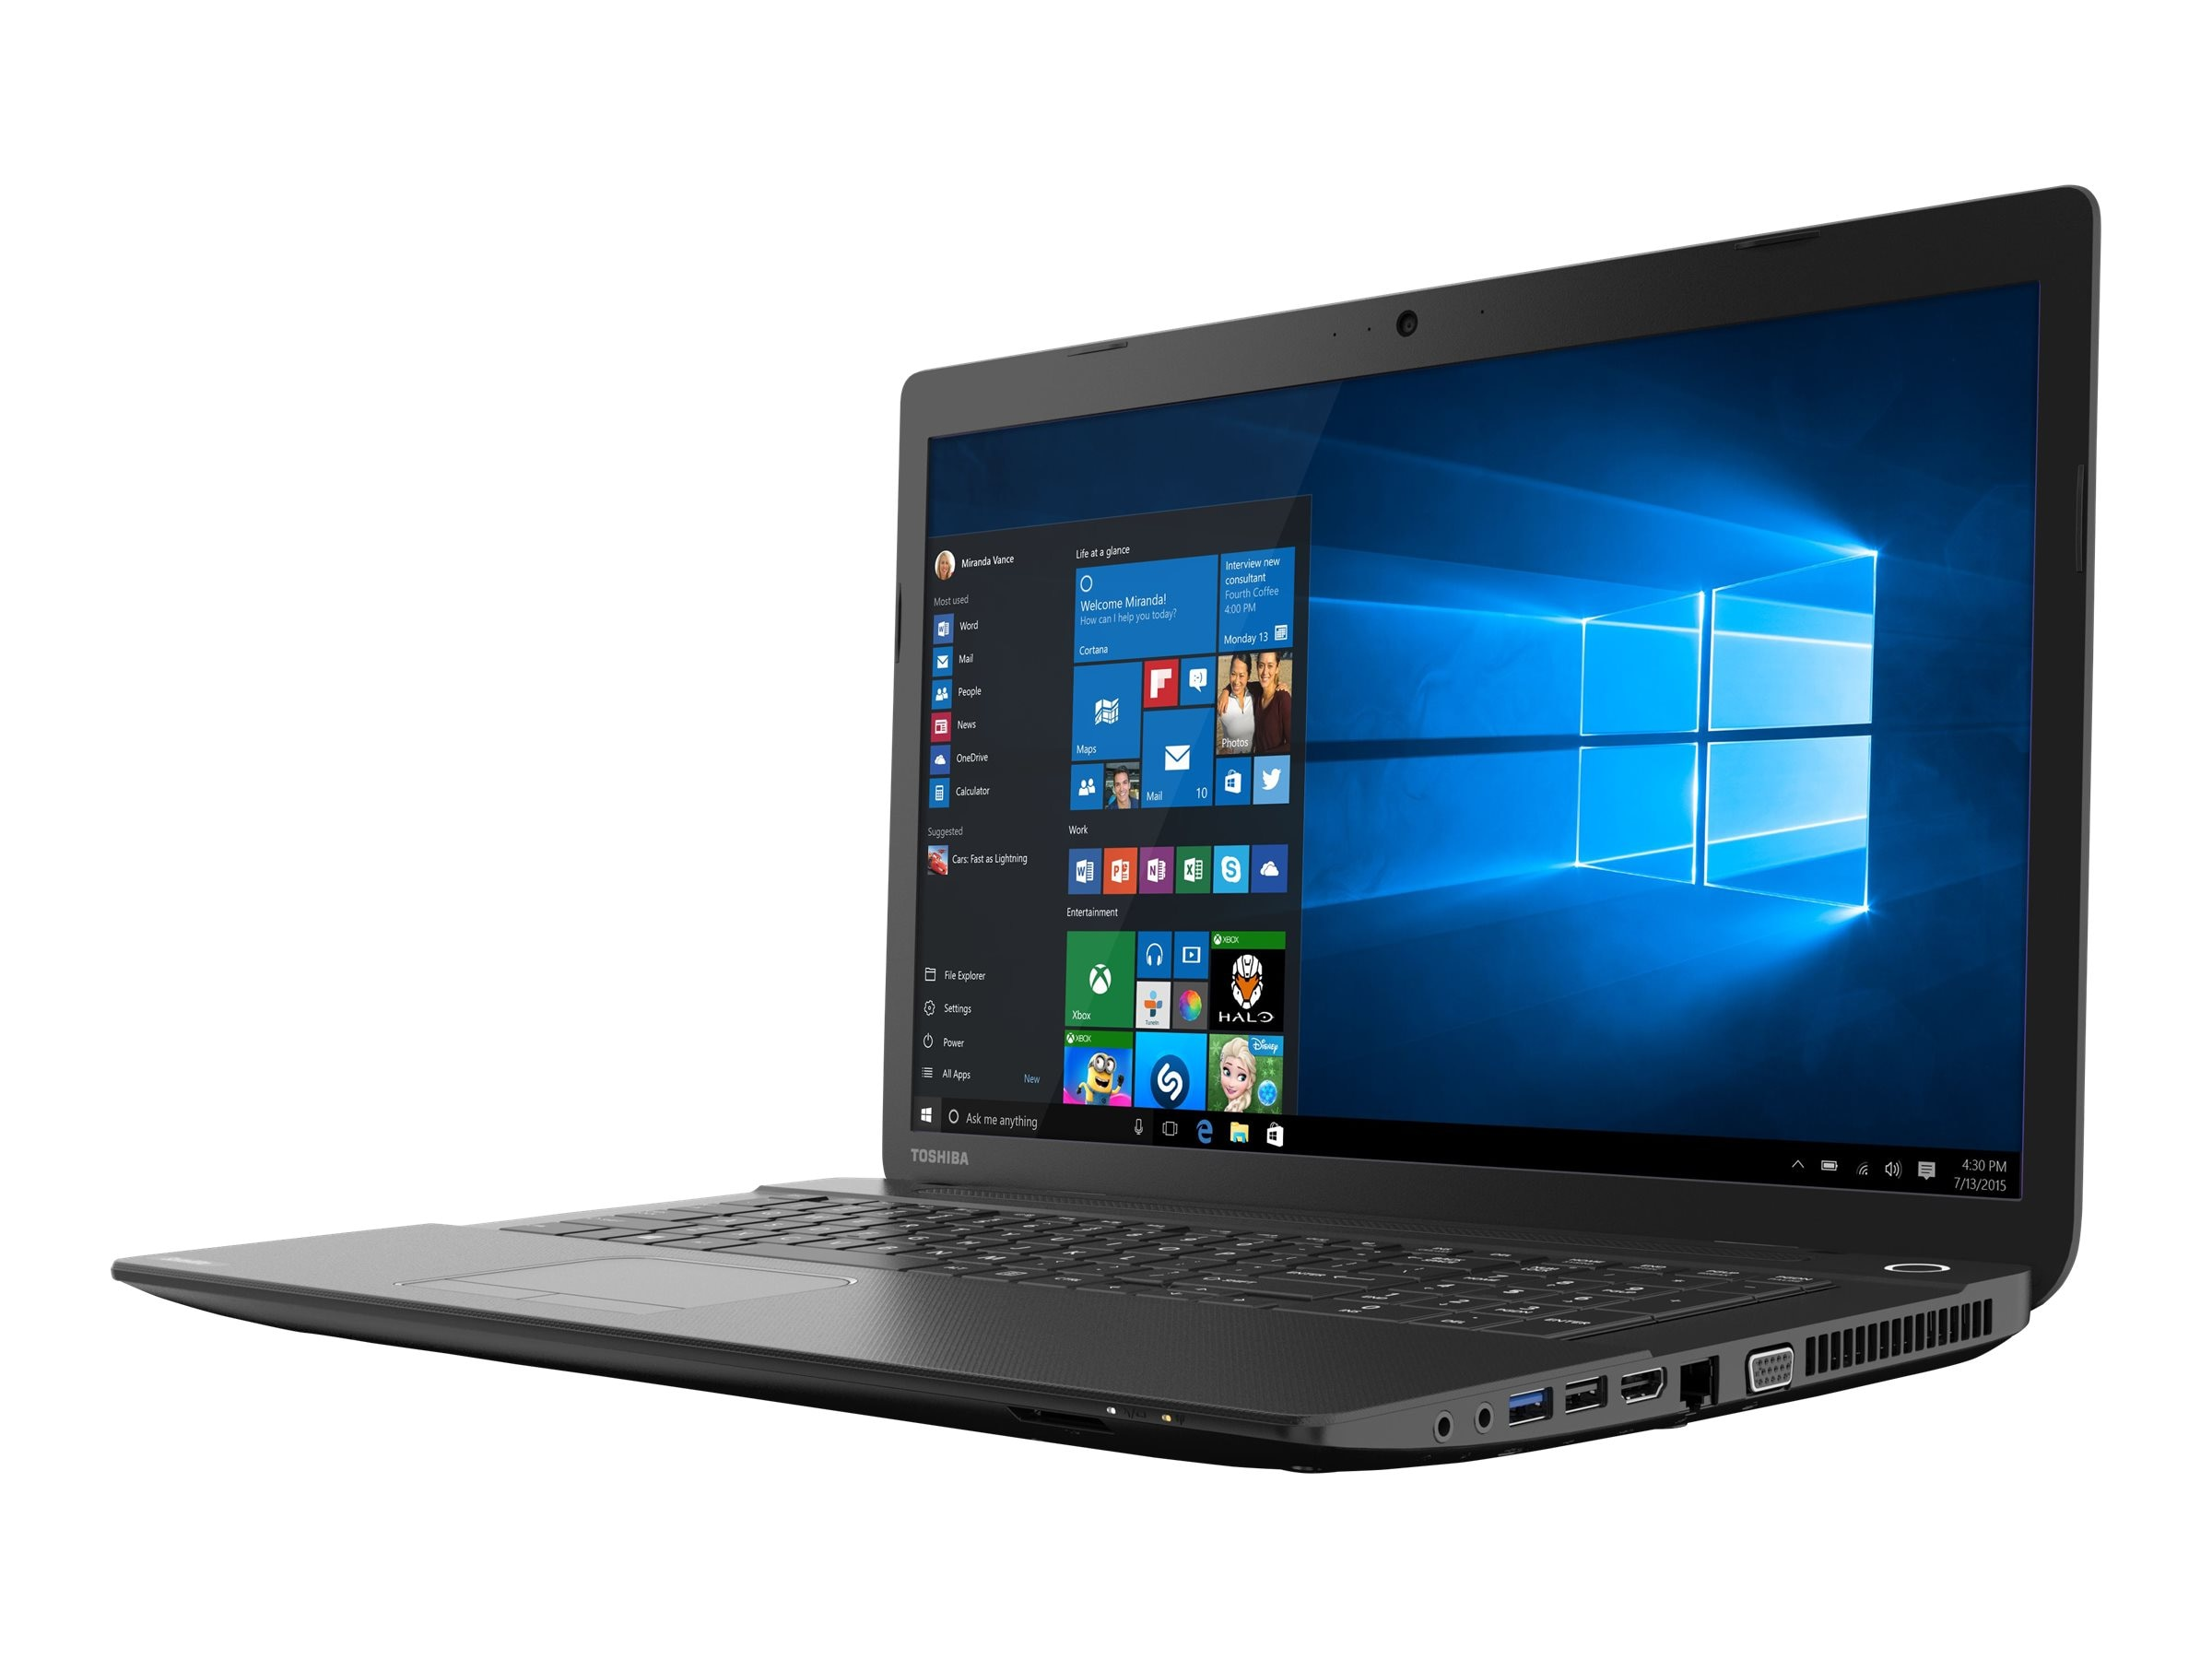 Toshiba Satellite C75D-B7297 6GB 750GB 17.3, PSCLEU-04T06J, 23205447, Notebooks